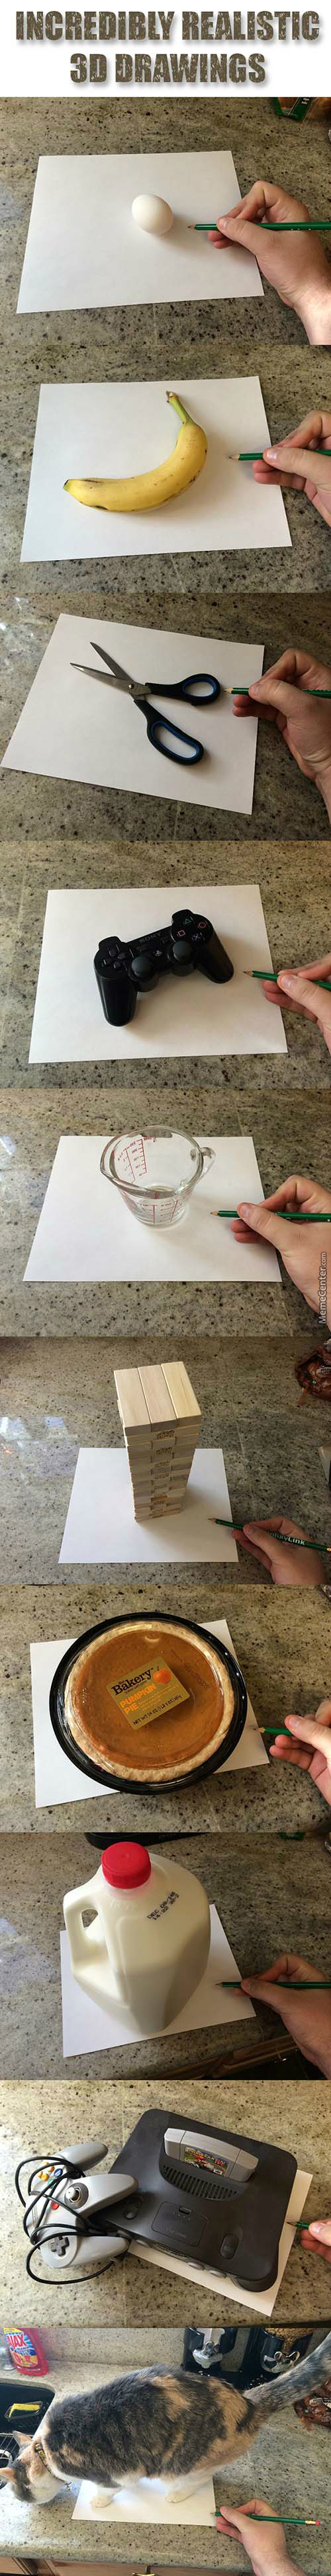 Incredibly Precise Drawings